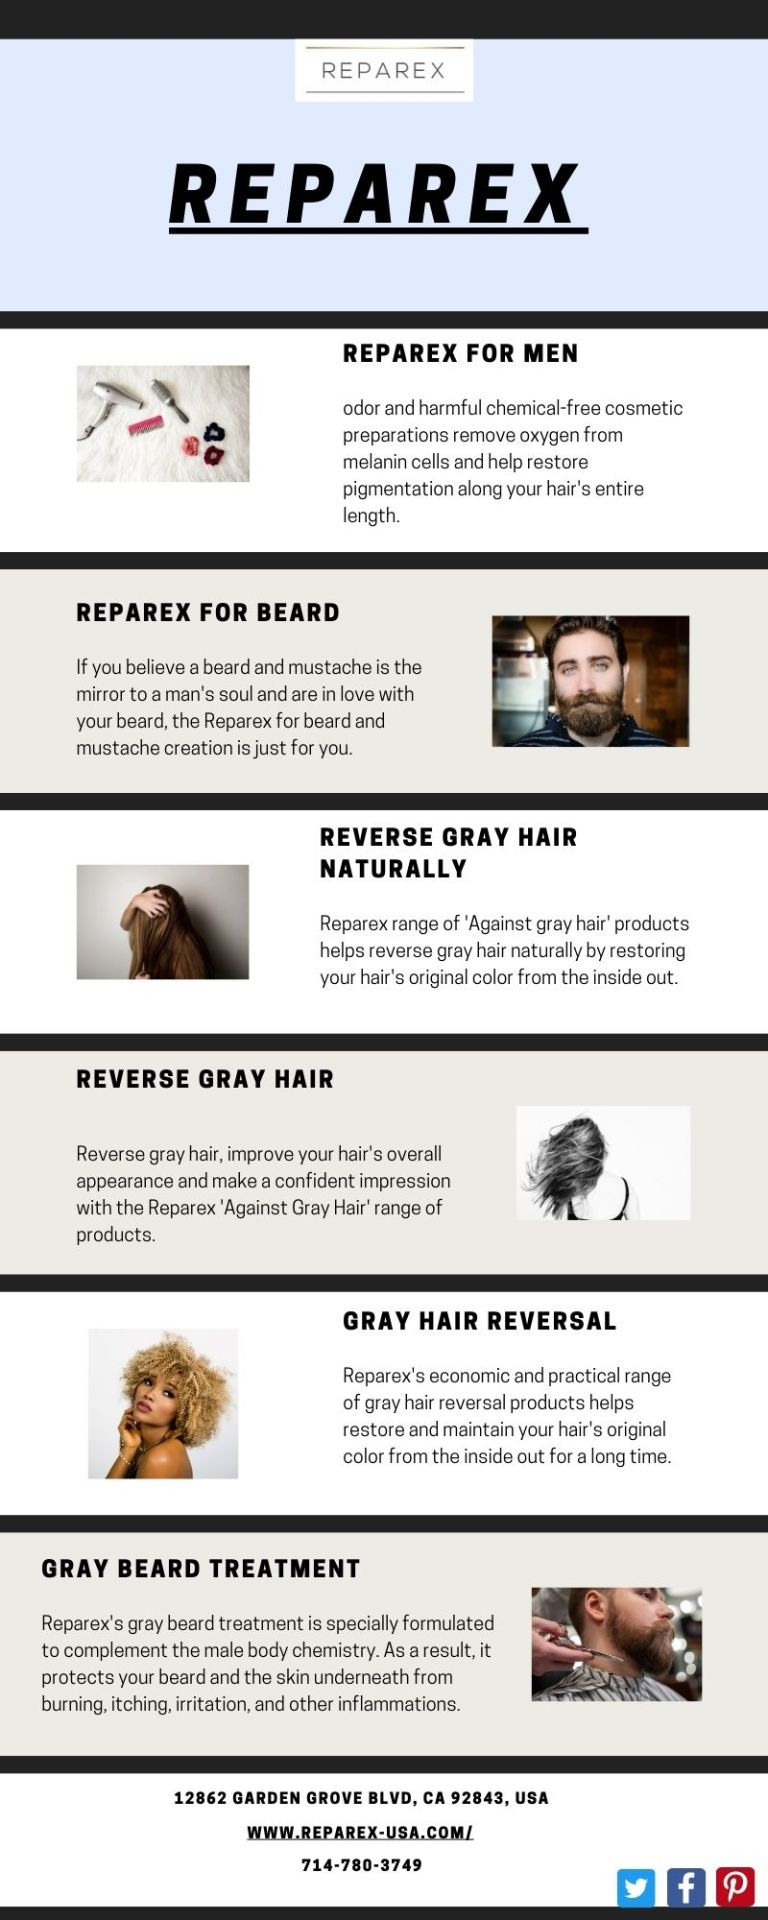 Reparex range of Against gray hair products helps reverse gray hair naturally by restoring your hairs original color from the inside out. #Reverse Gray Hair Naturally  #Supplements to Reverse Gray Hair  #gray hair care products  #Stop Gray Hair  #Reparex for Mustache  #Reparex for Beard